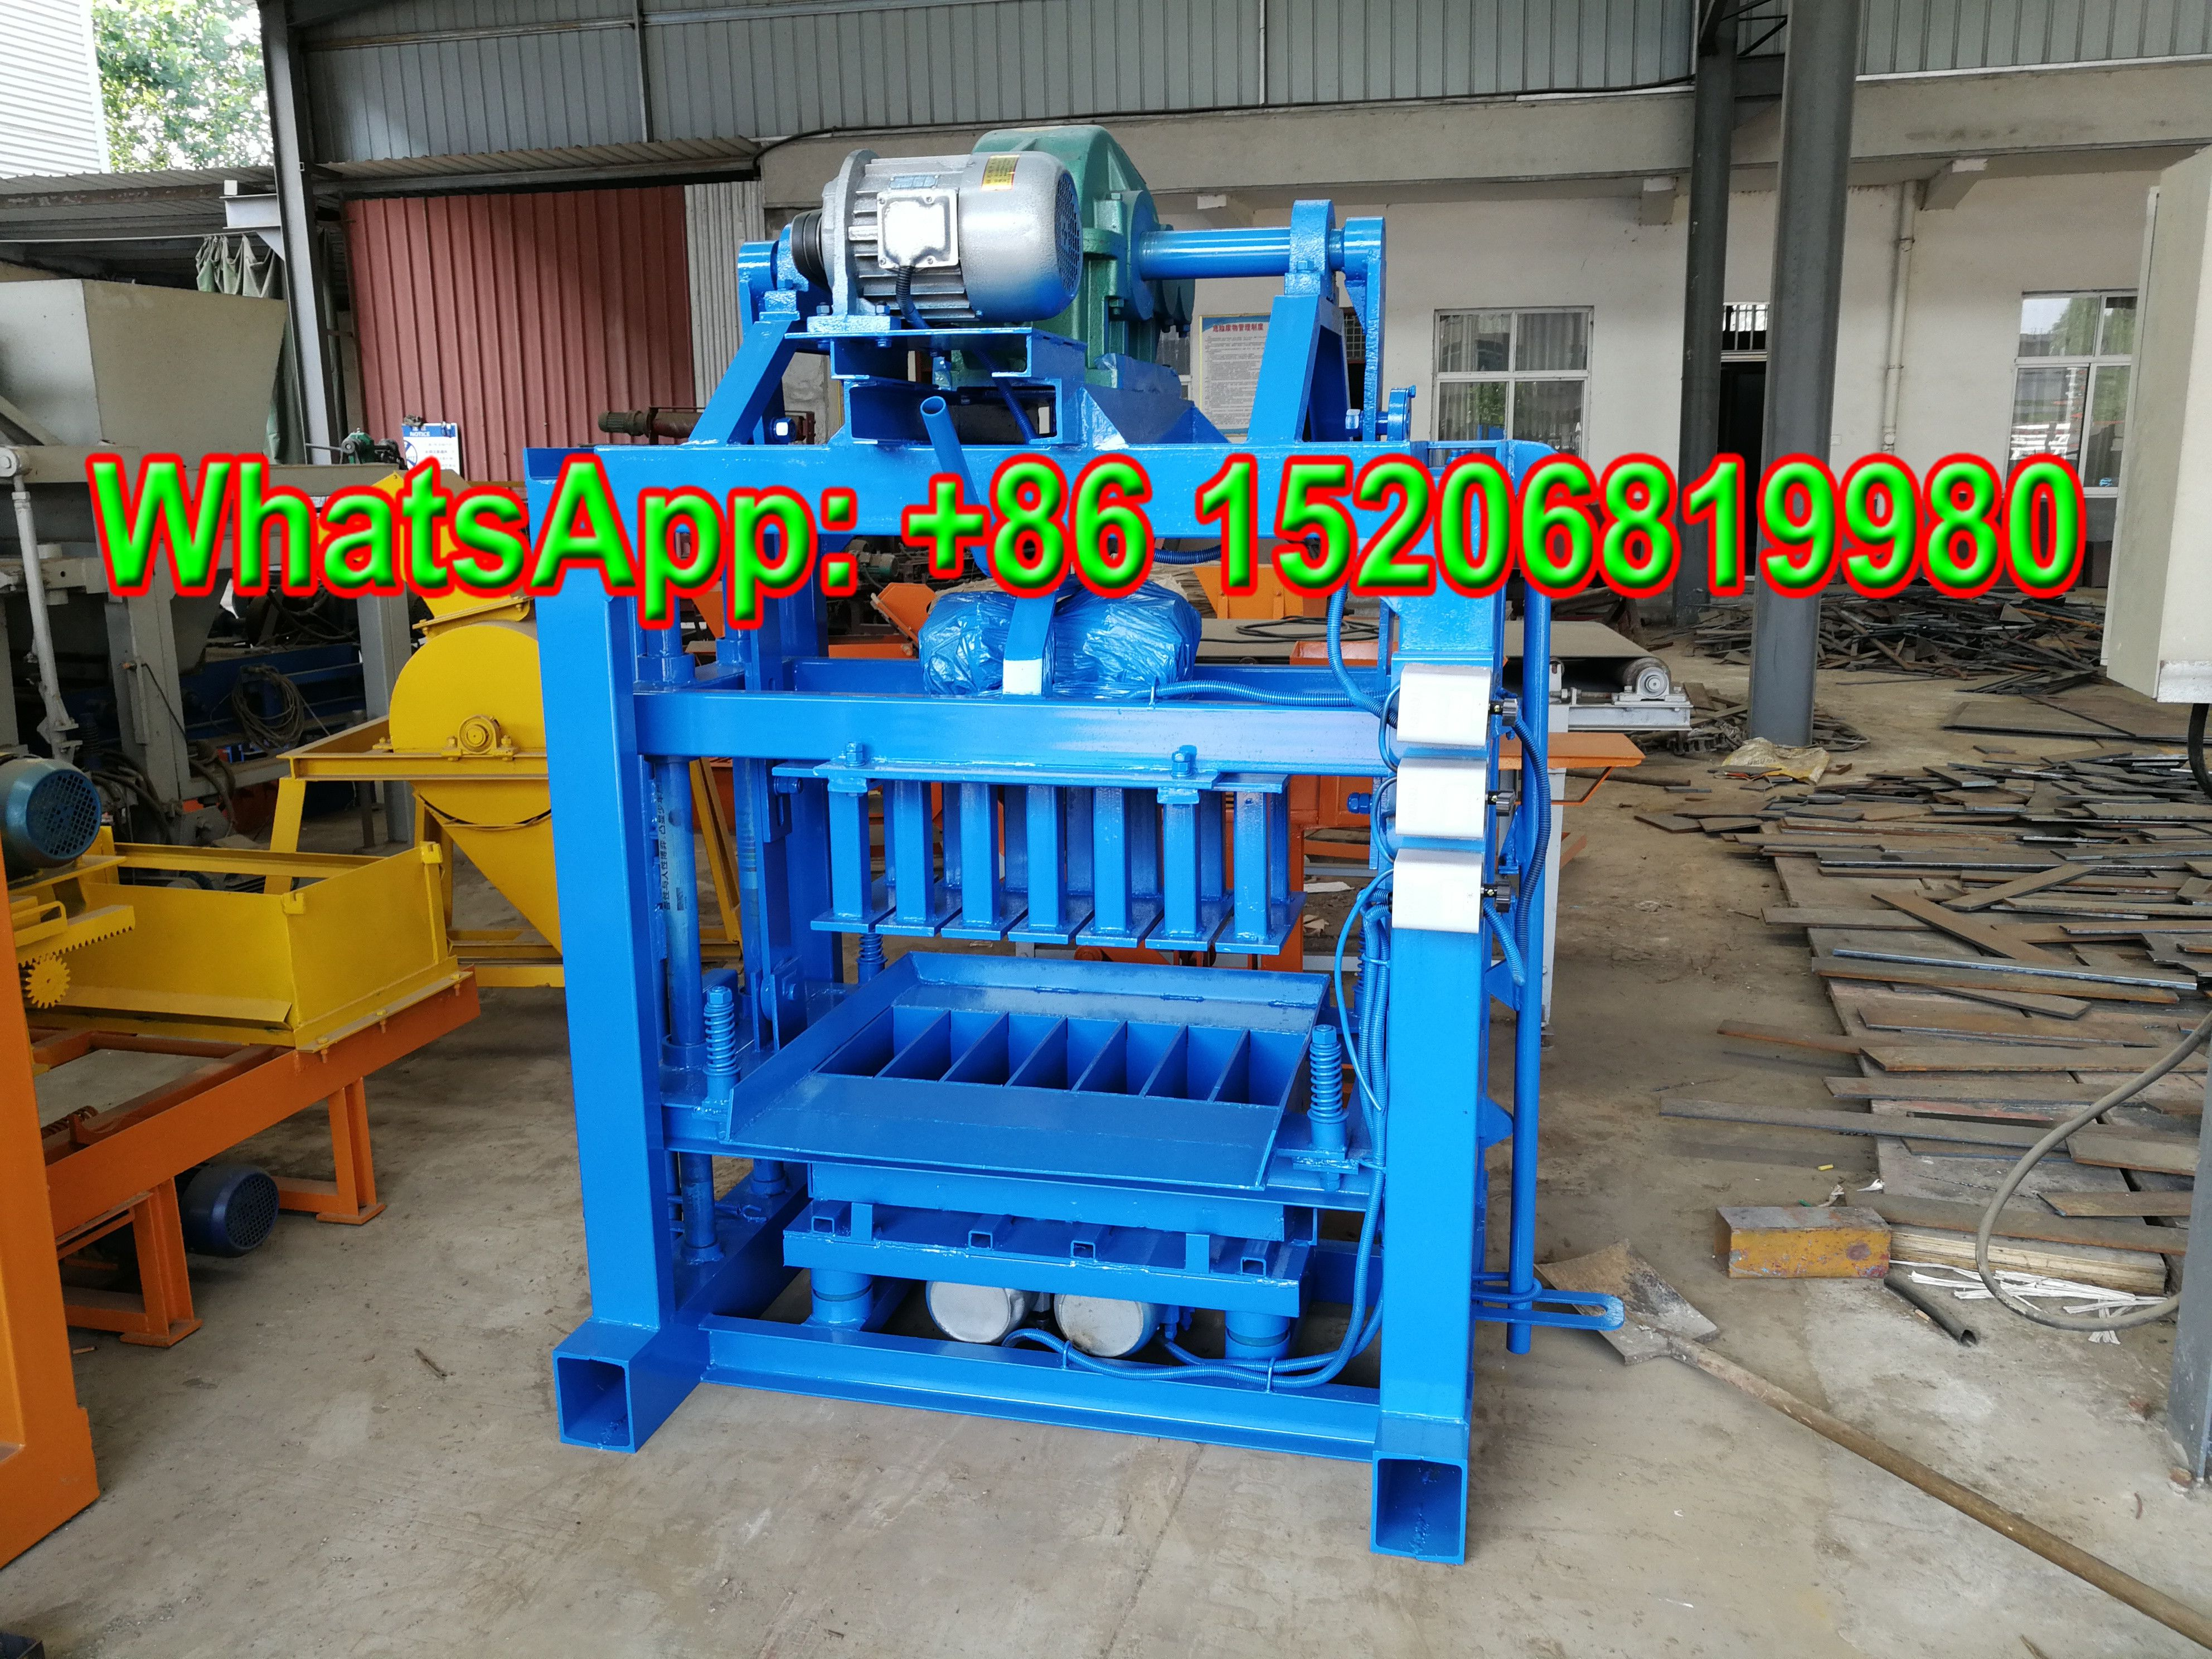 Giantlin Qt40 2 Manual Concrete Block Machine For Sale With Low Price Hollow Block Cement Solid Brick Interlocking Interlocking Pavers Concrete Solid Brick